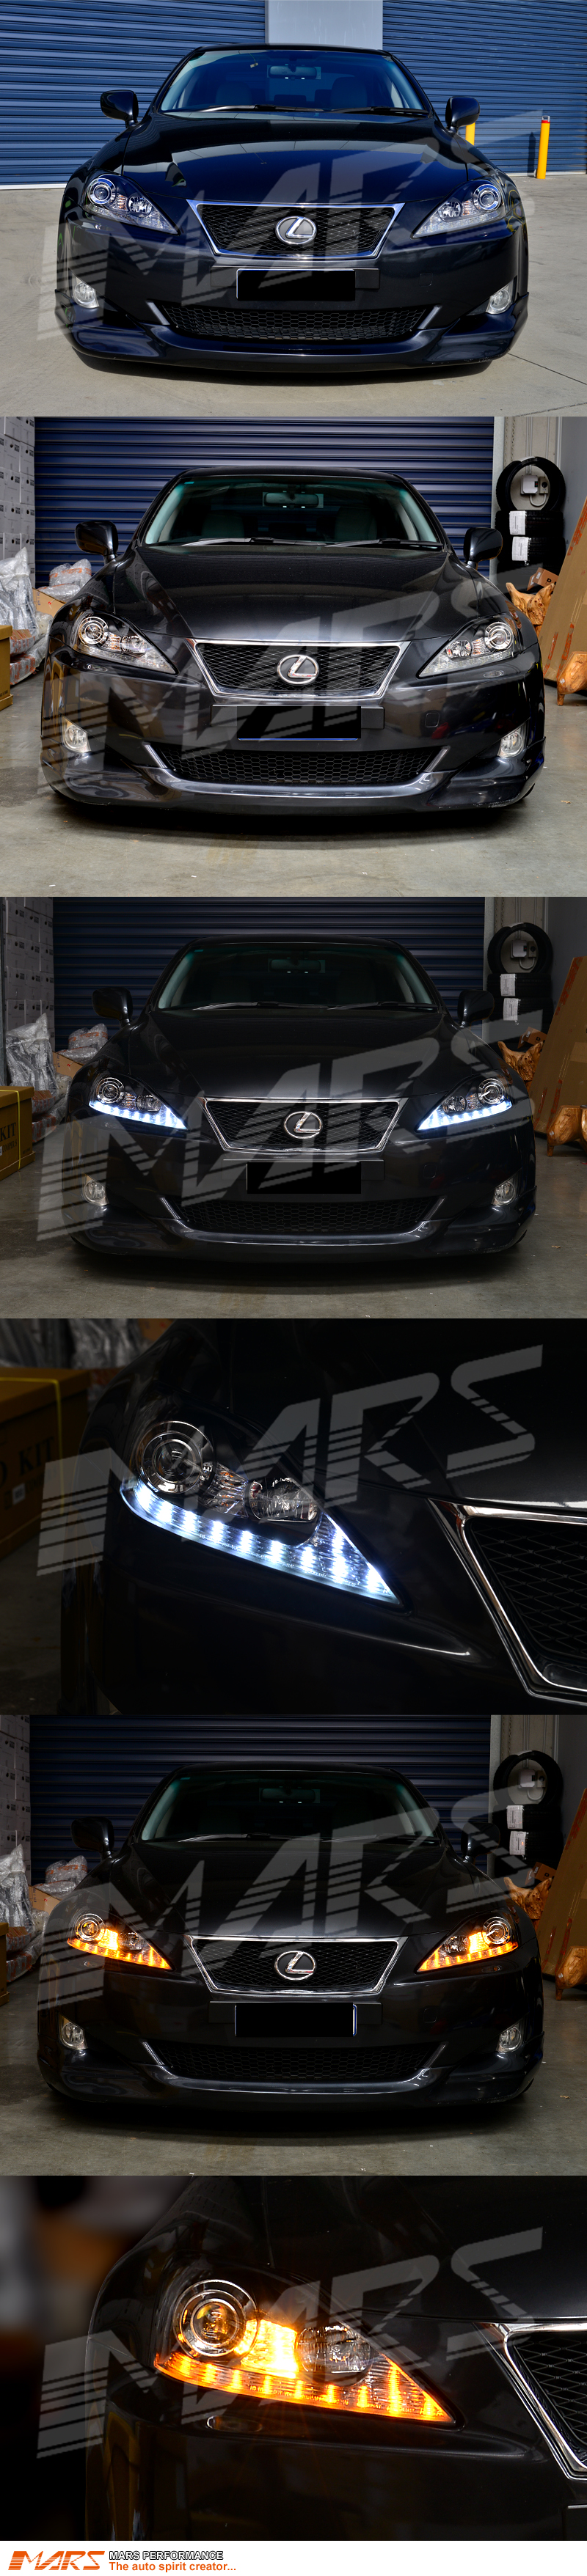 blacked out chrome tint kit and no tumblr with more covers f key on headlights images headlight lexus ideas is